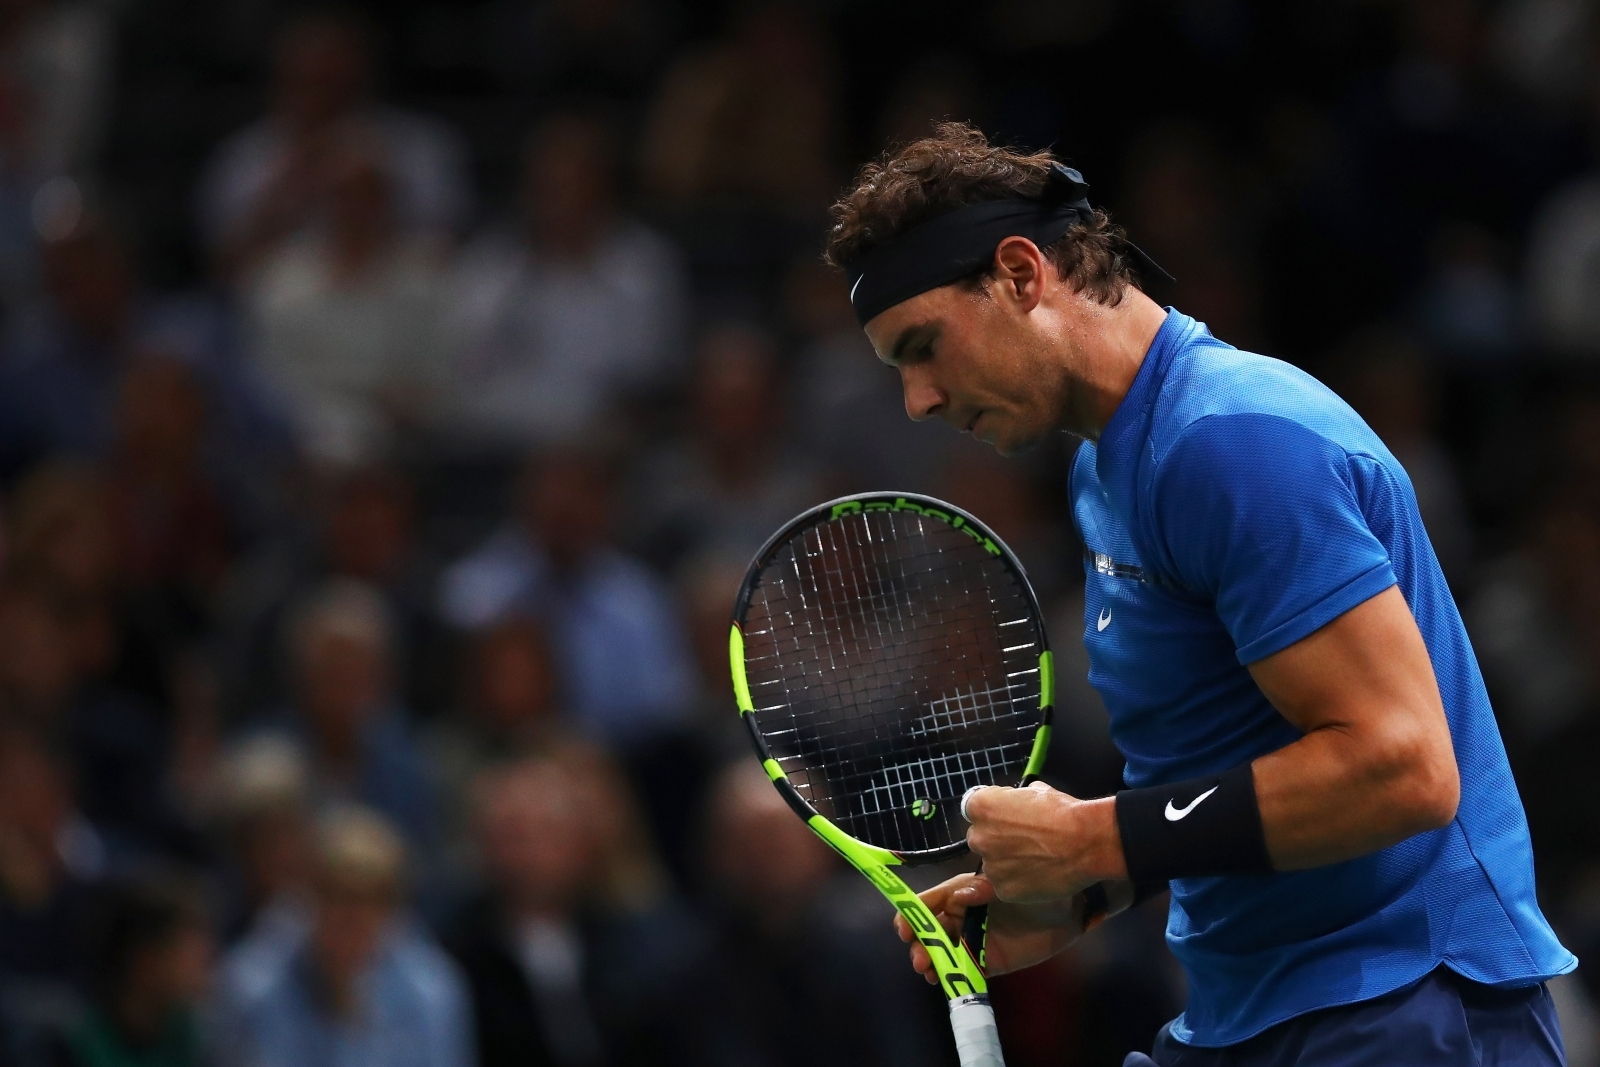 Rafael Nadal Ends Year Ranked Number 1 In The World